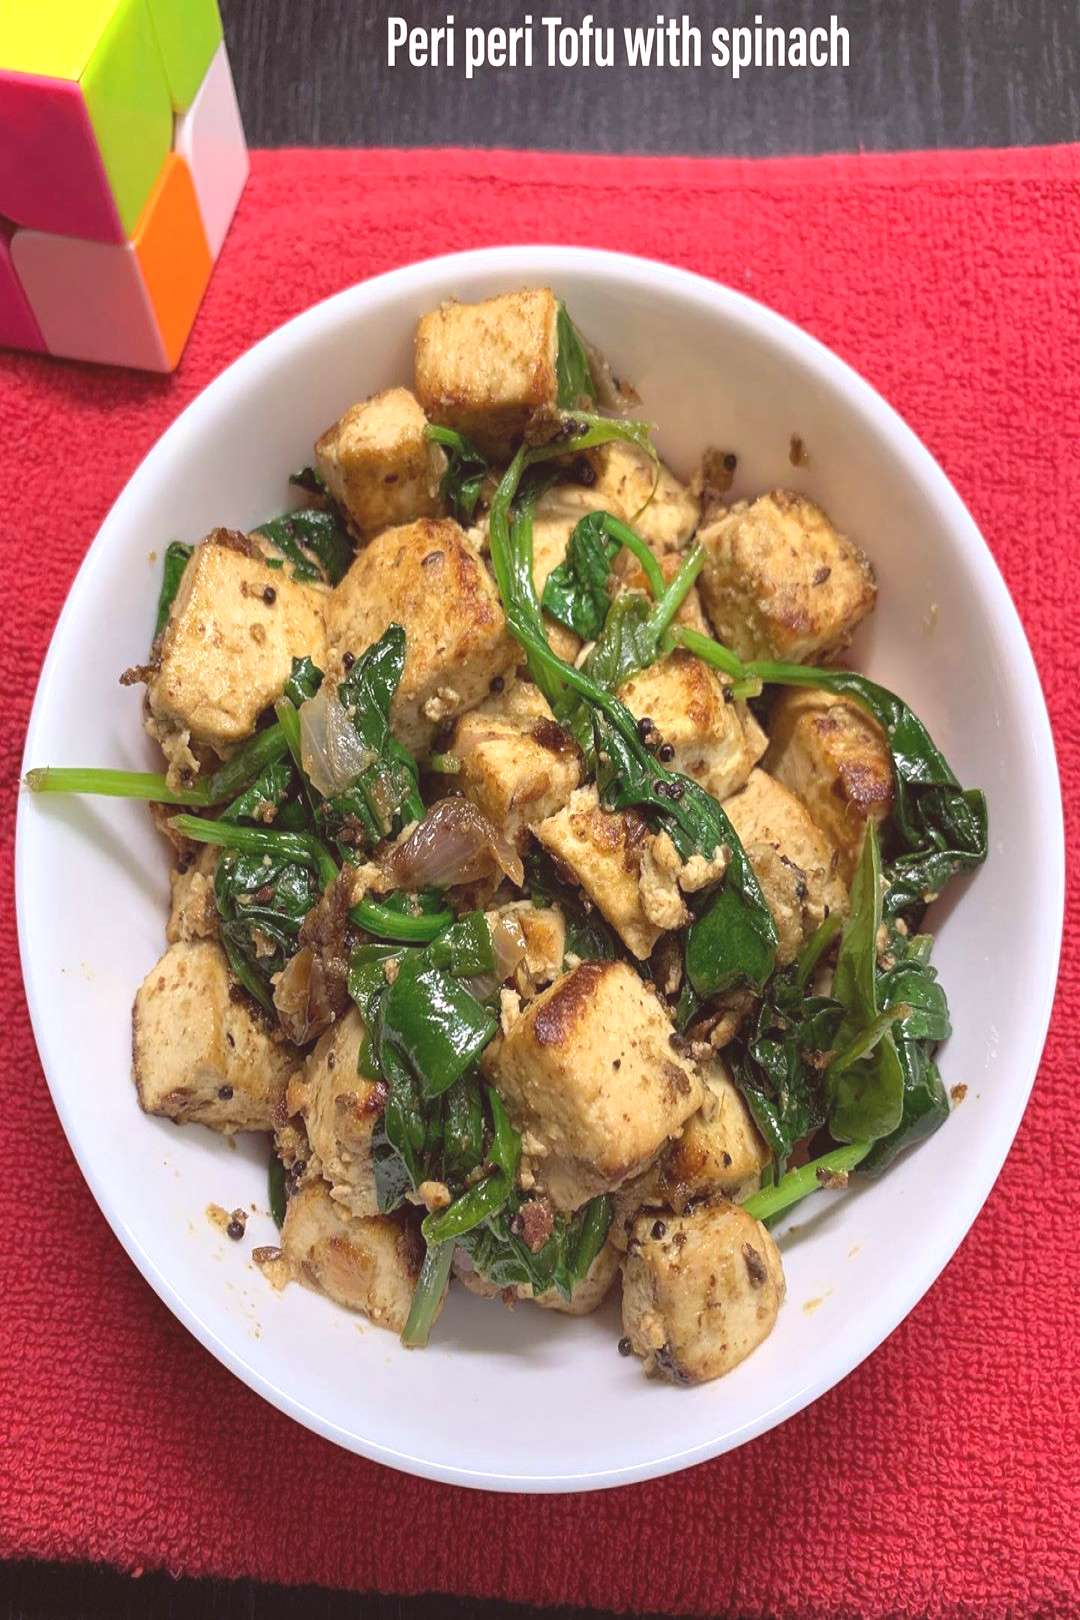 food possible text that says Peri peri Tofu with spinach